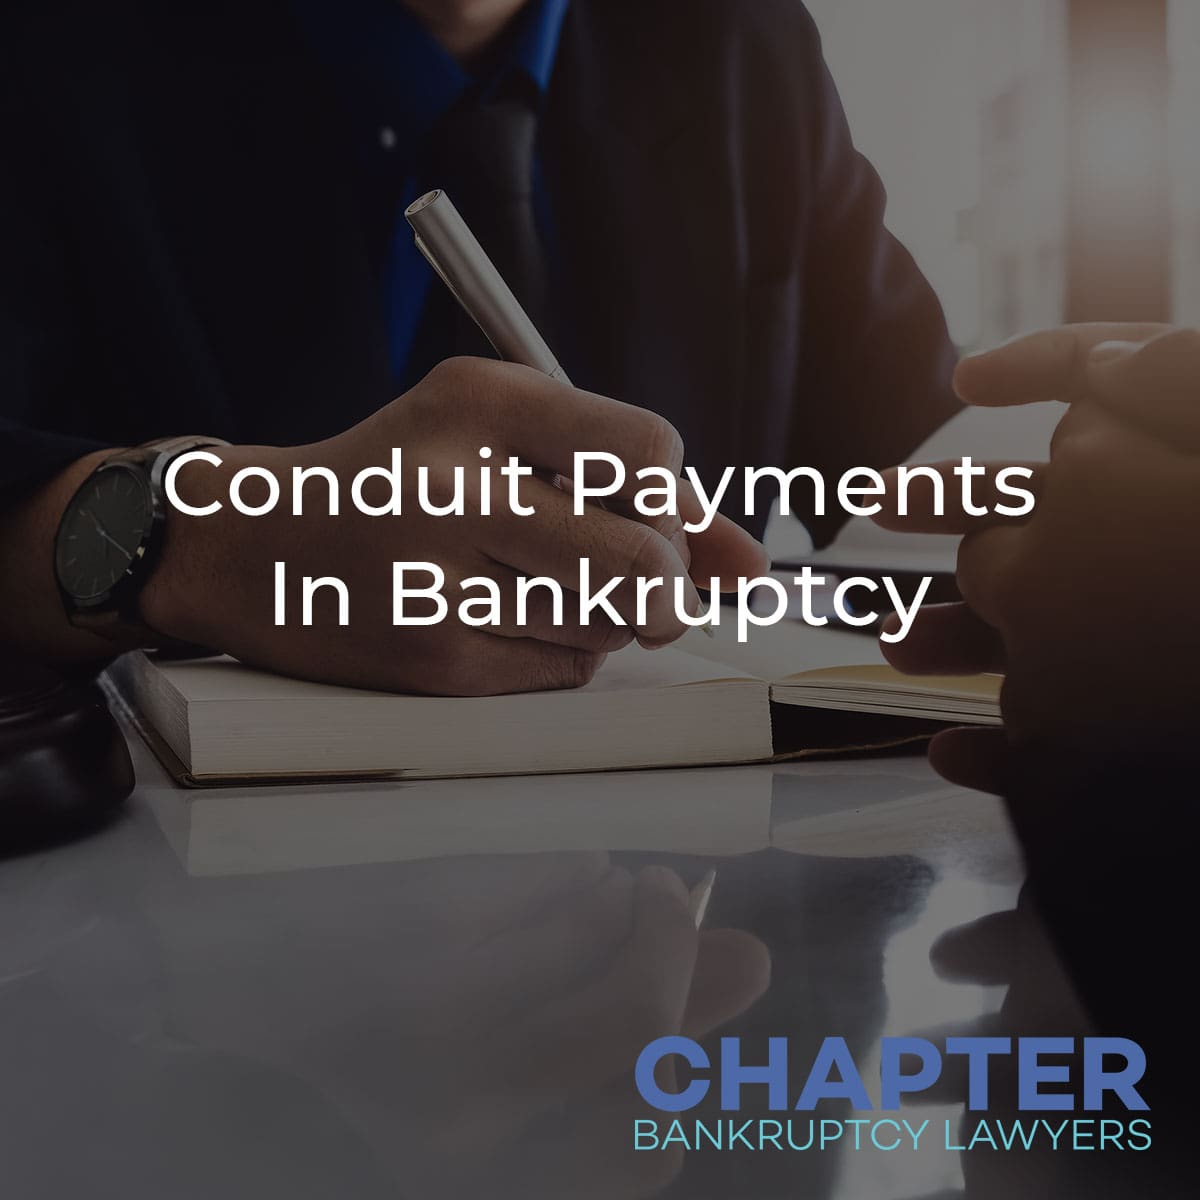 Arizona Conduit Payments In Bankruptcy